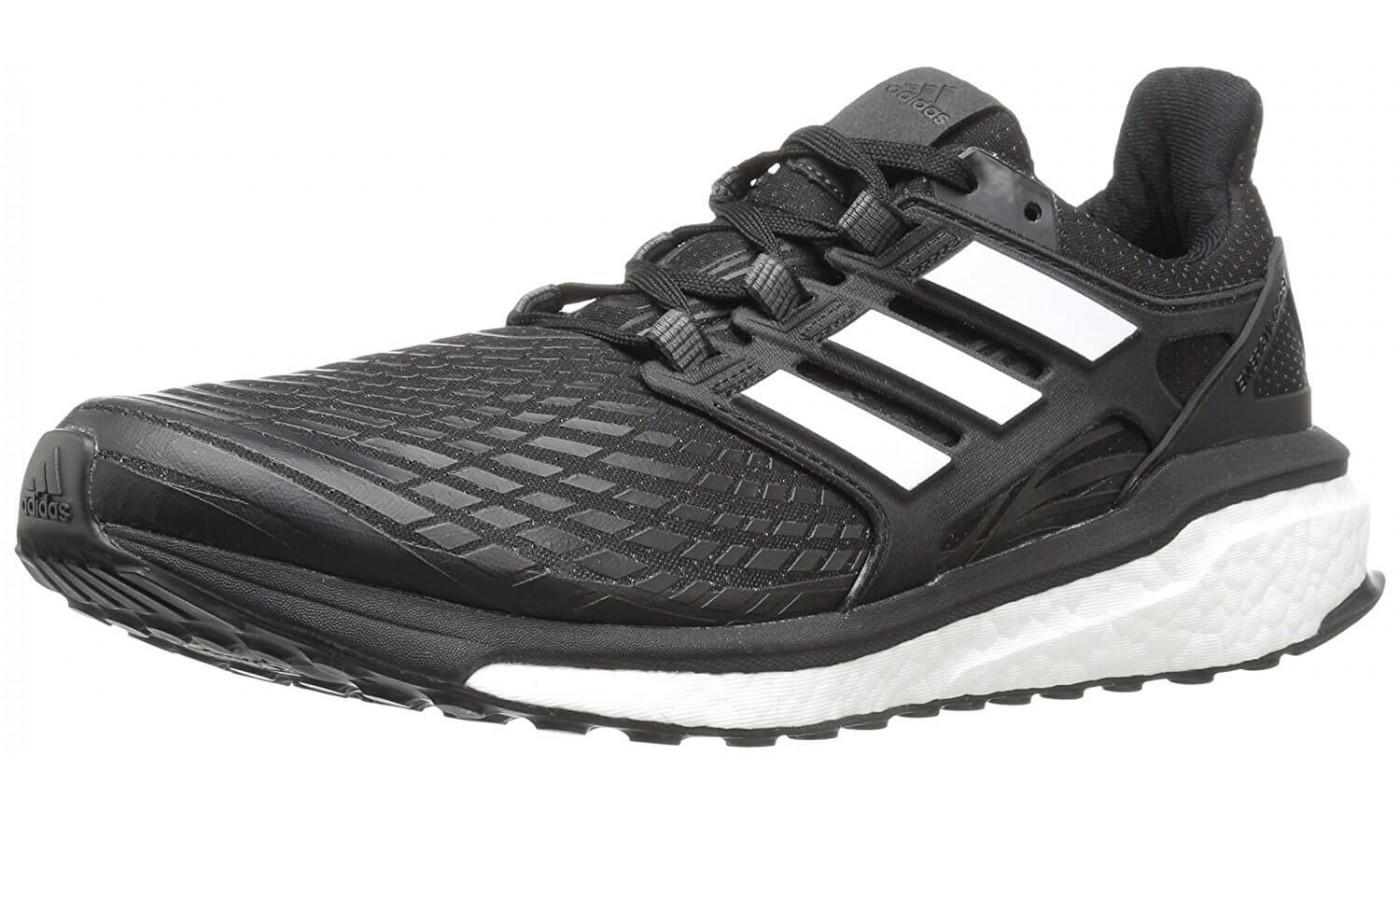 Adidas Energy Boost shown from the front/side